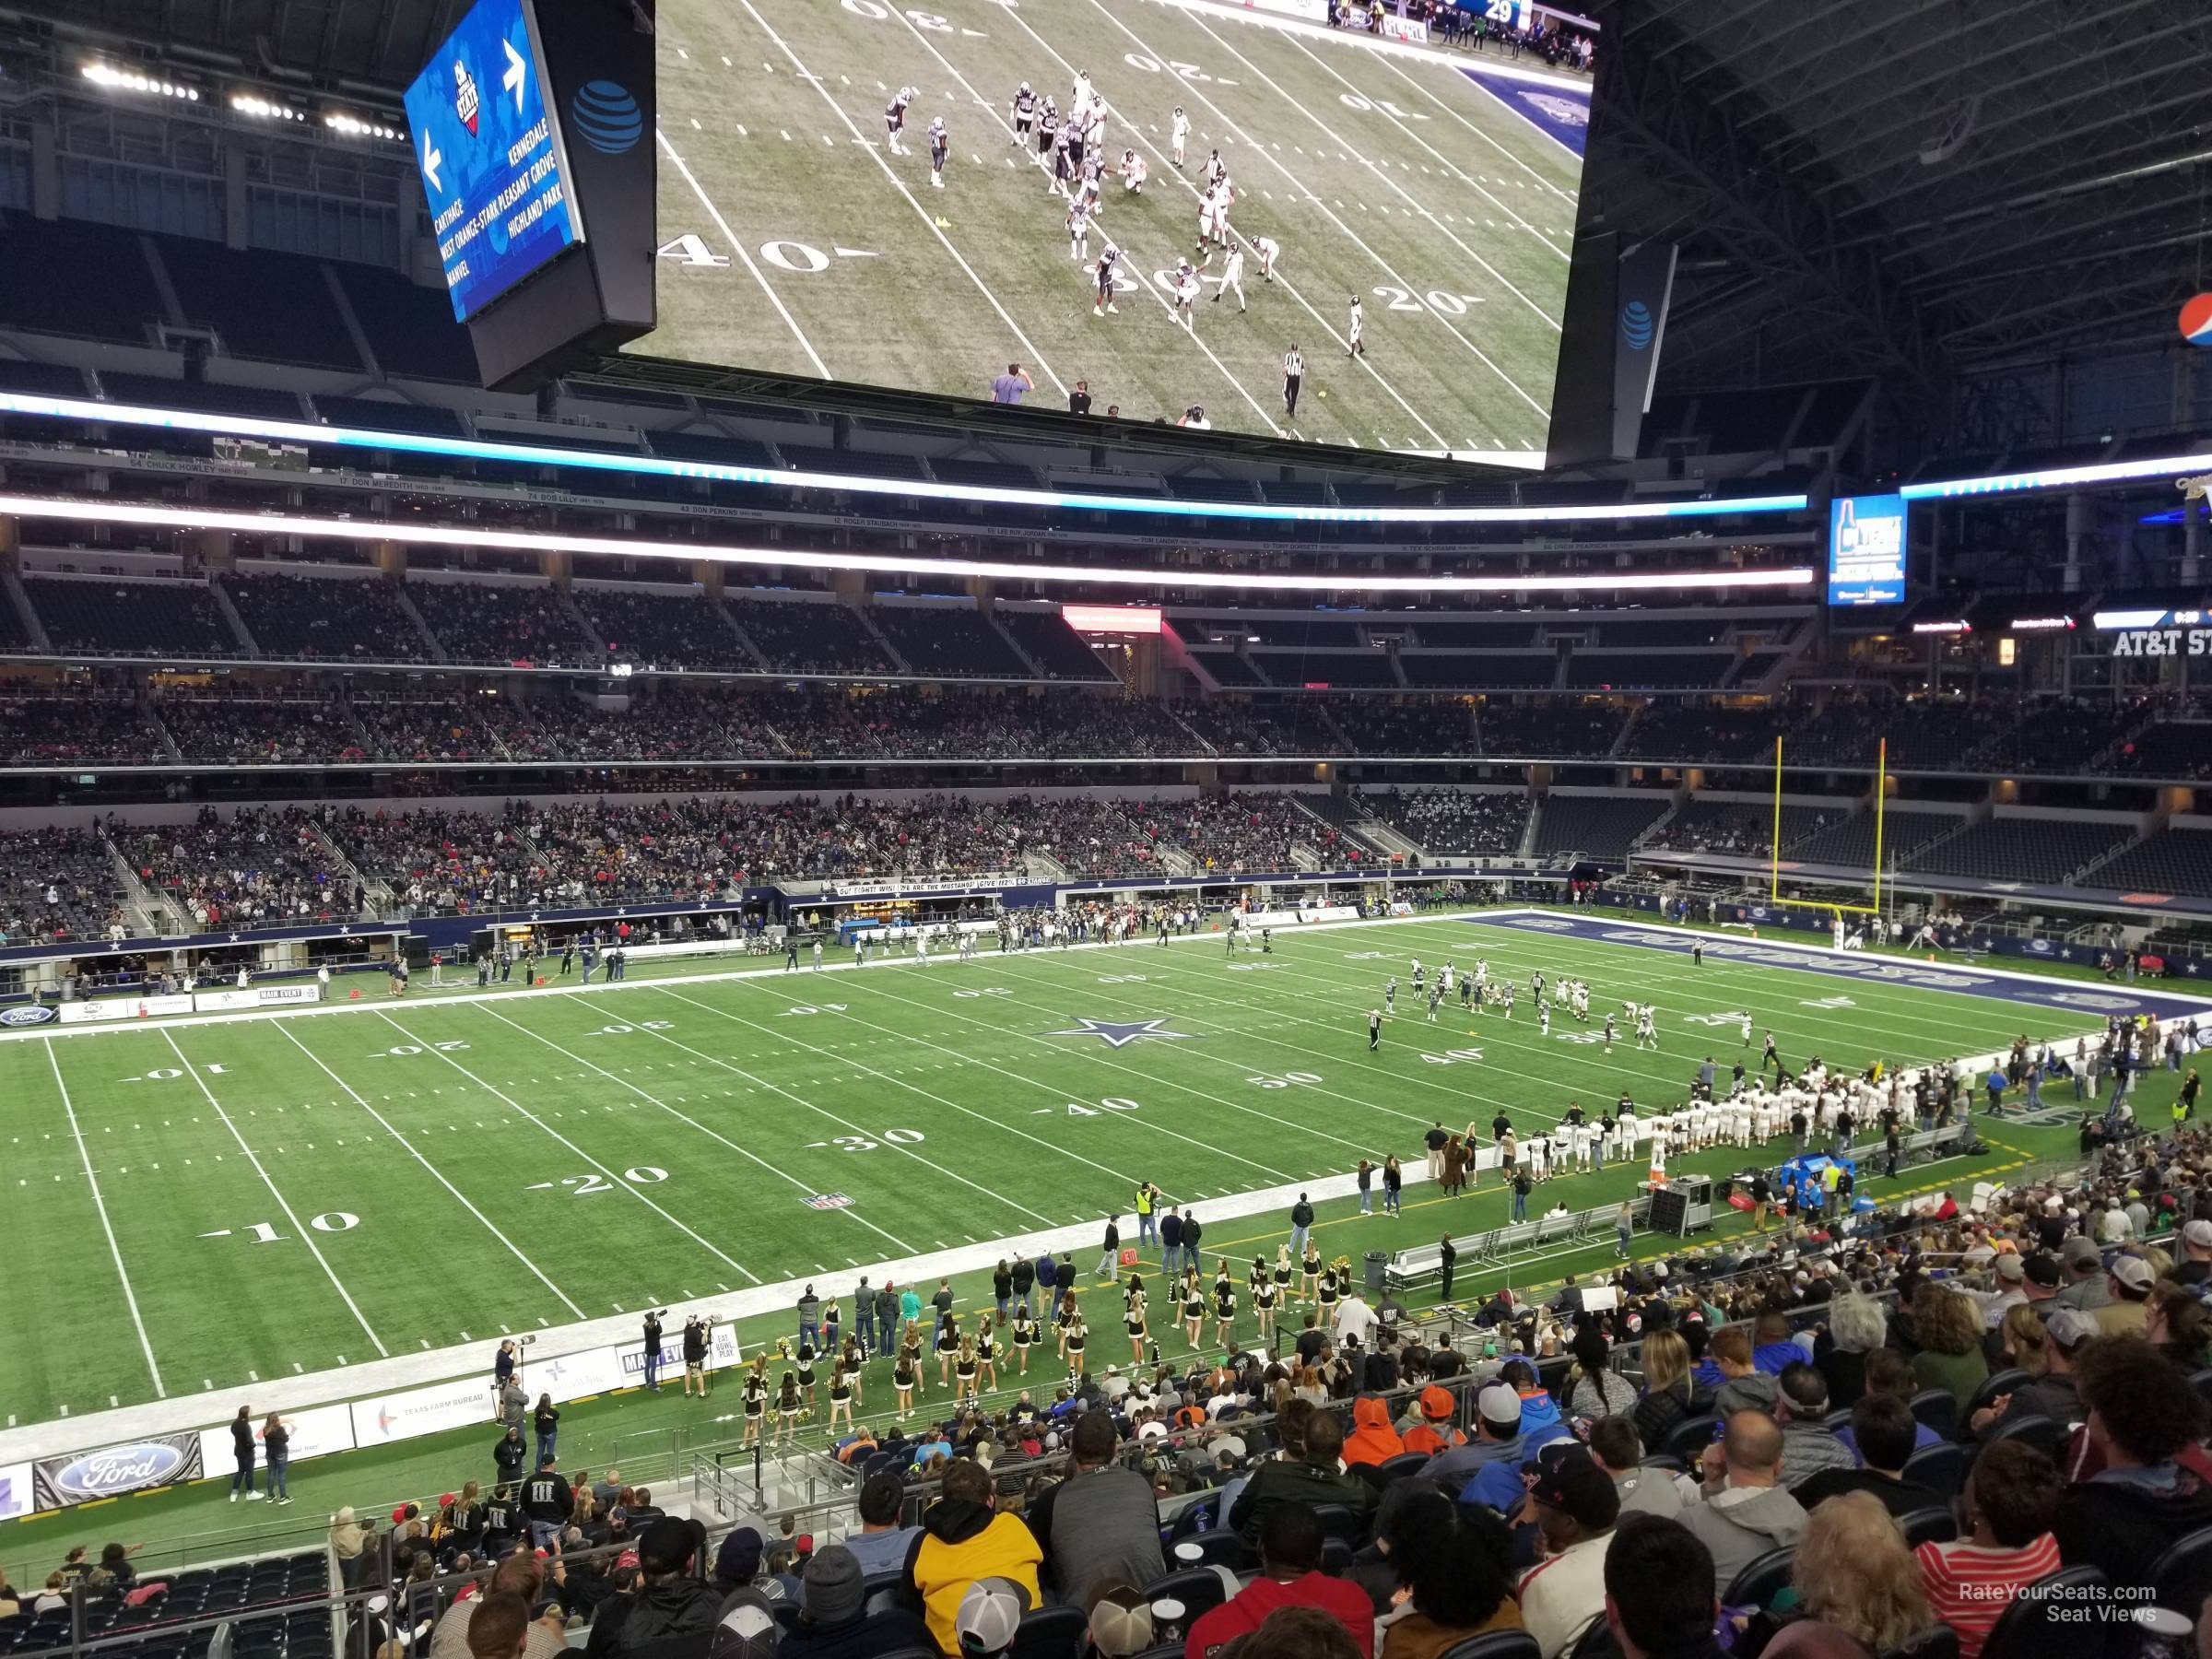 Dallas Cowboys Seat View for AT&T Stadium Section C239, Row 10